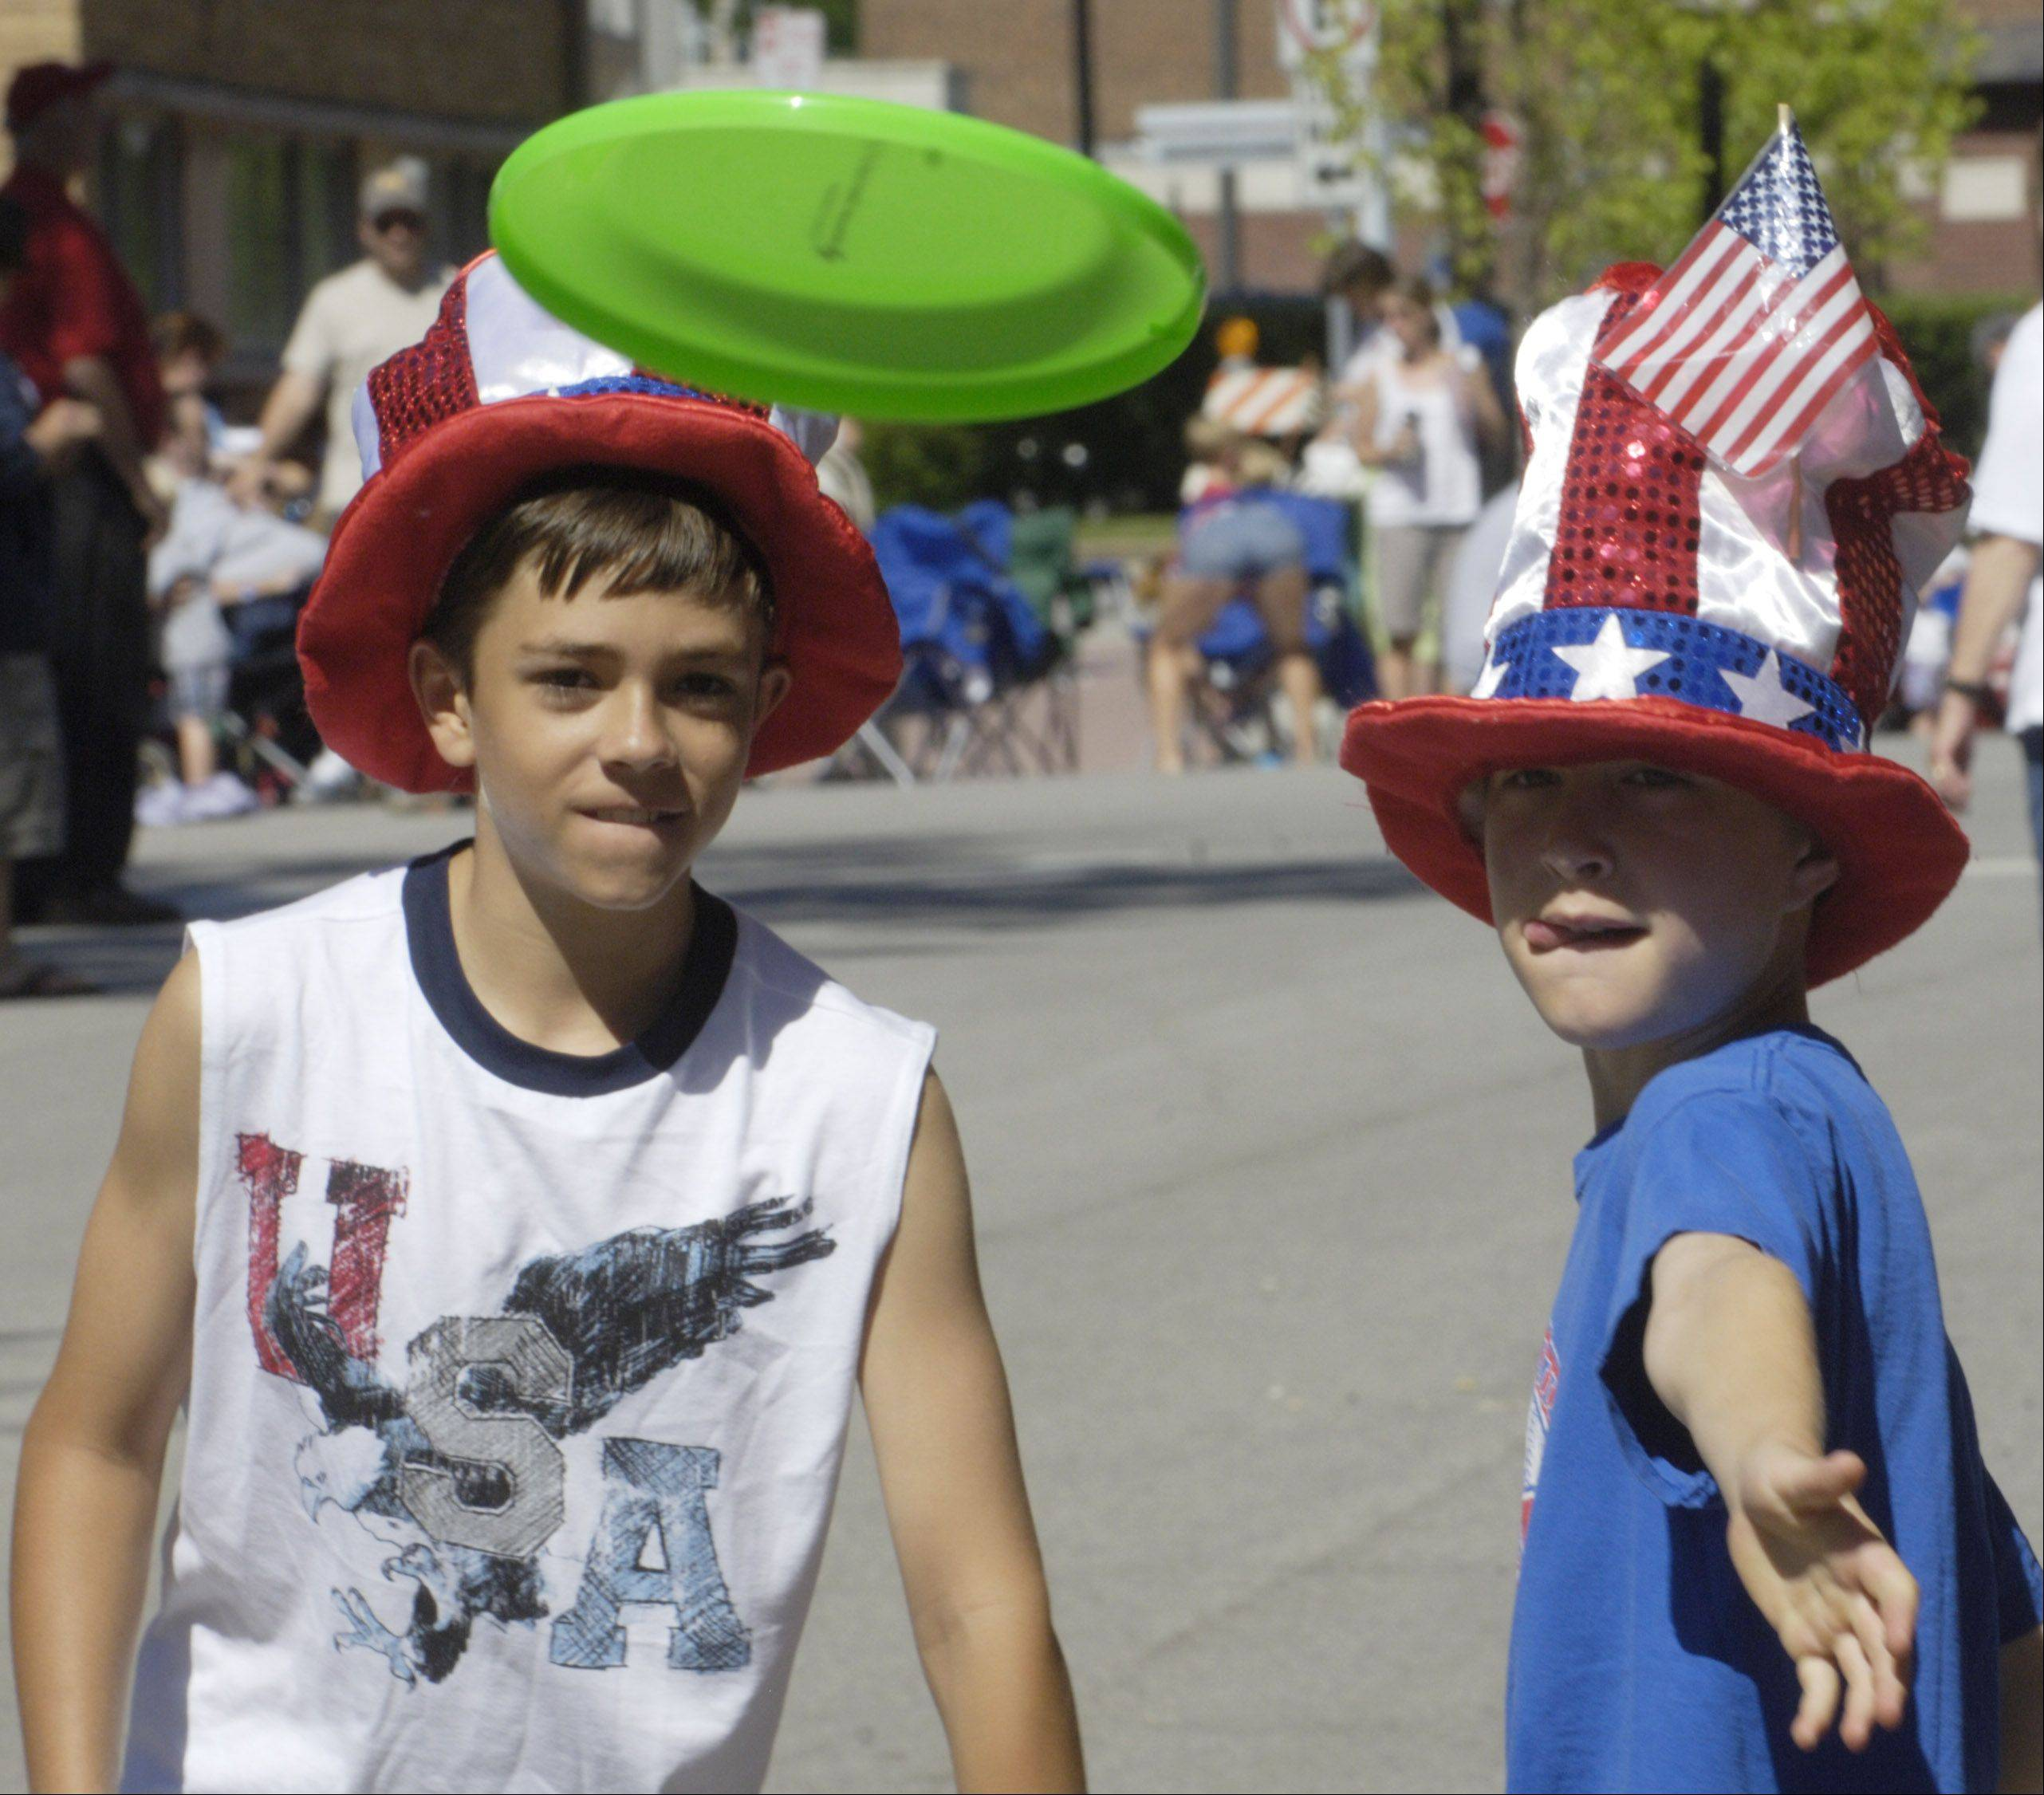 Leo Rule, 12, left and Tyler Frank, 11, both of Arlington Heights, toss a disc before the start of the Arlington Heights Fourth of July parade Monday.